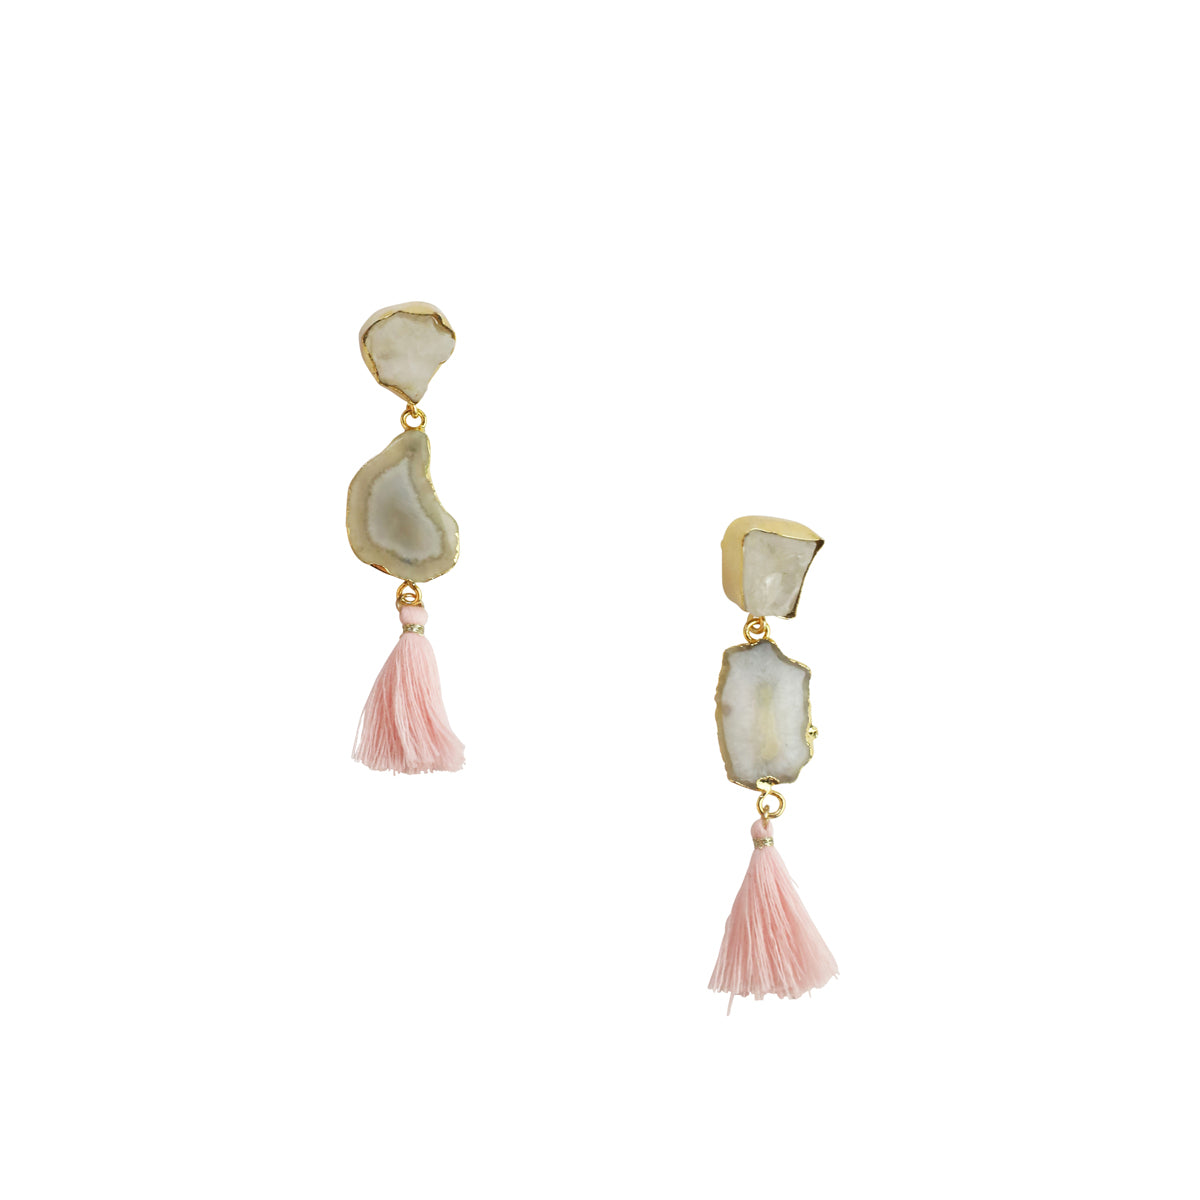 ROYALTA EARRINGS WITH MINT TASSEL